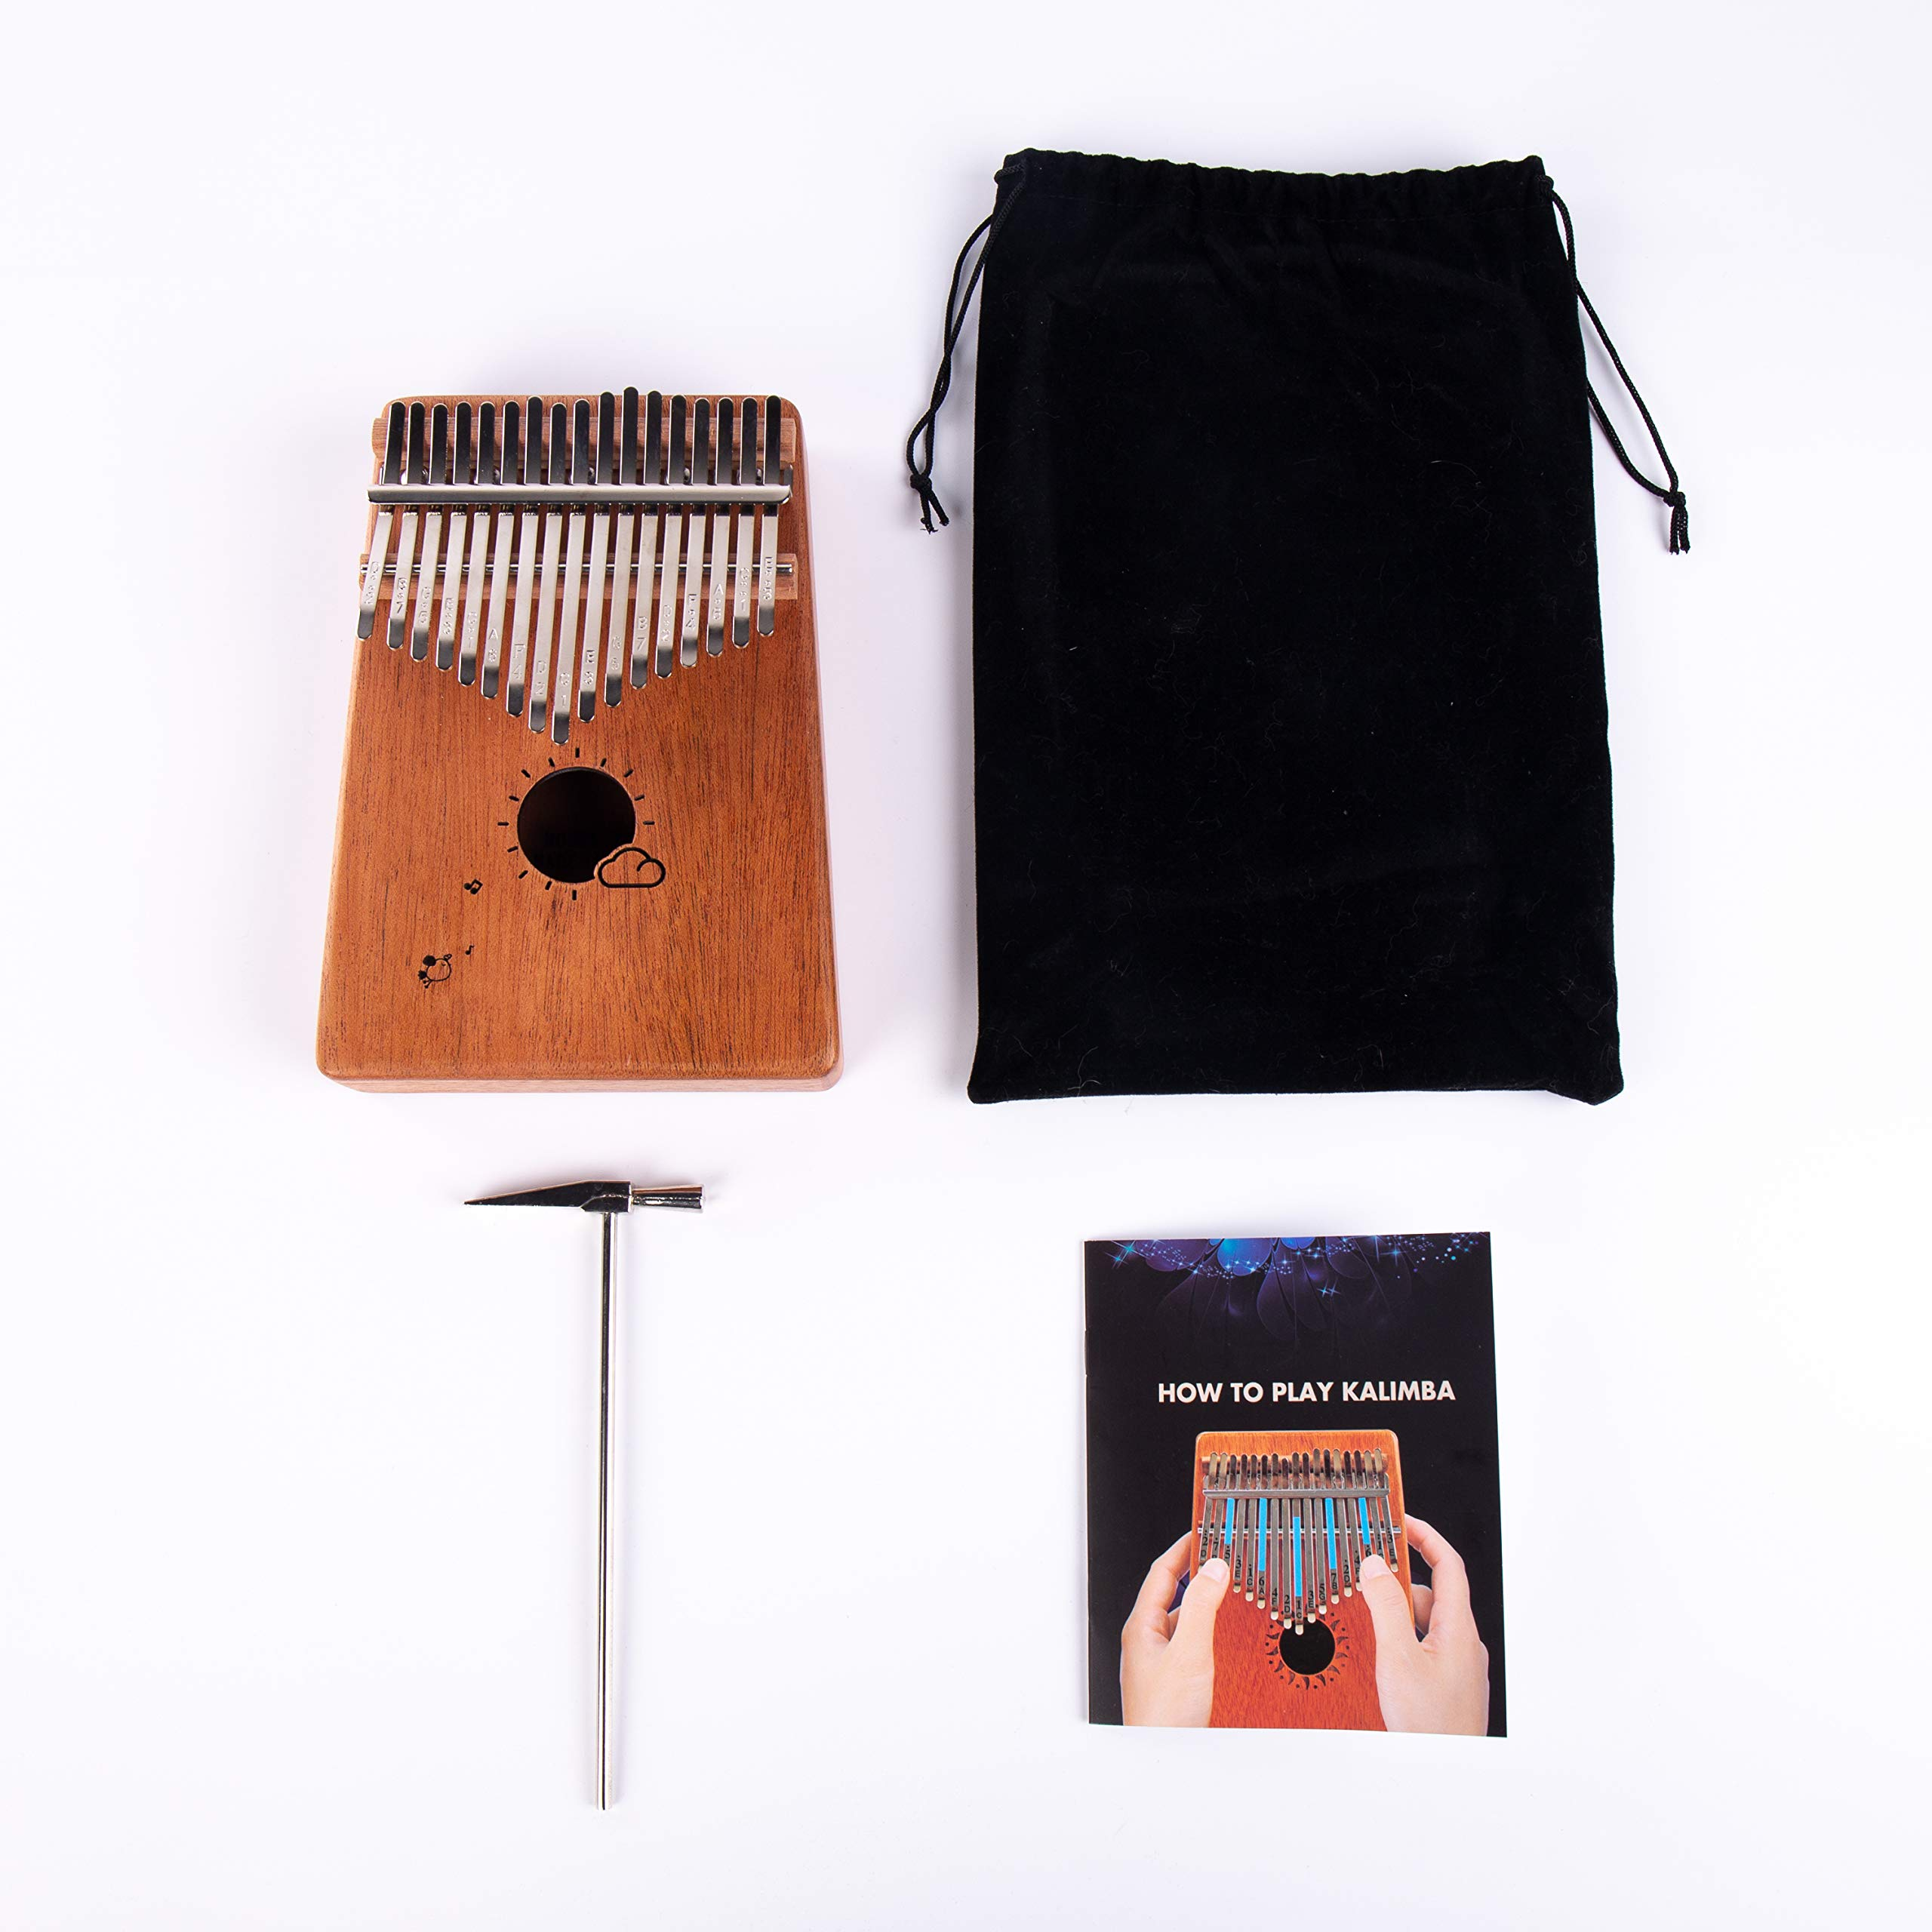 Kalimba 17 Keys Thumb Finger Piano - Mbira - Solid Mahogany and Portable with Carrying Bag and Instructions by GSM Brands (Image #7)